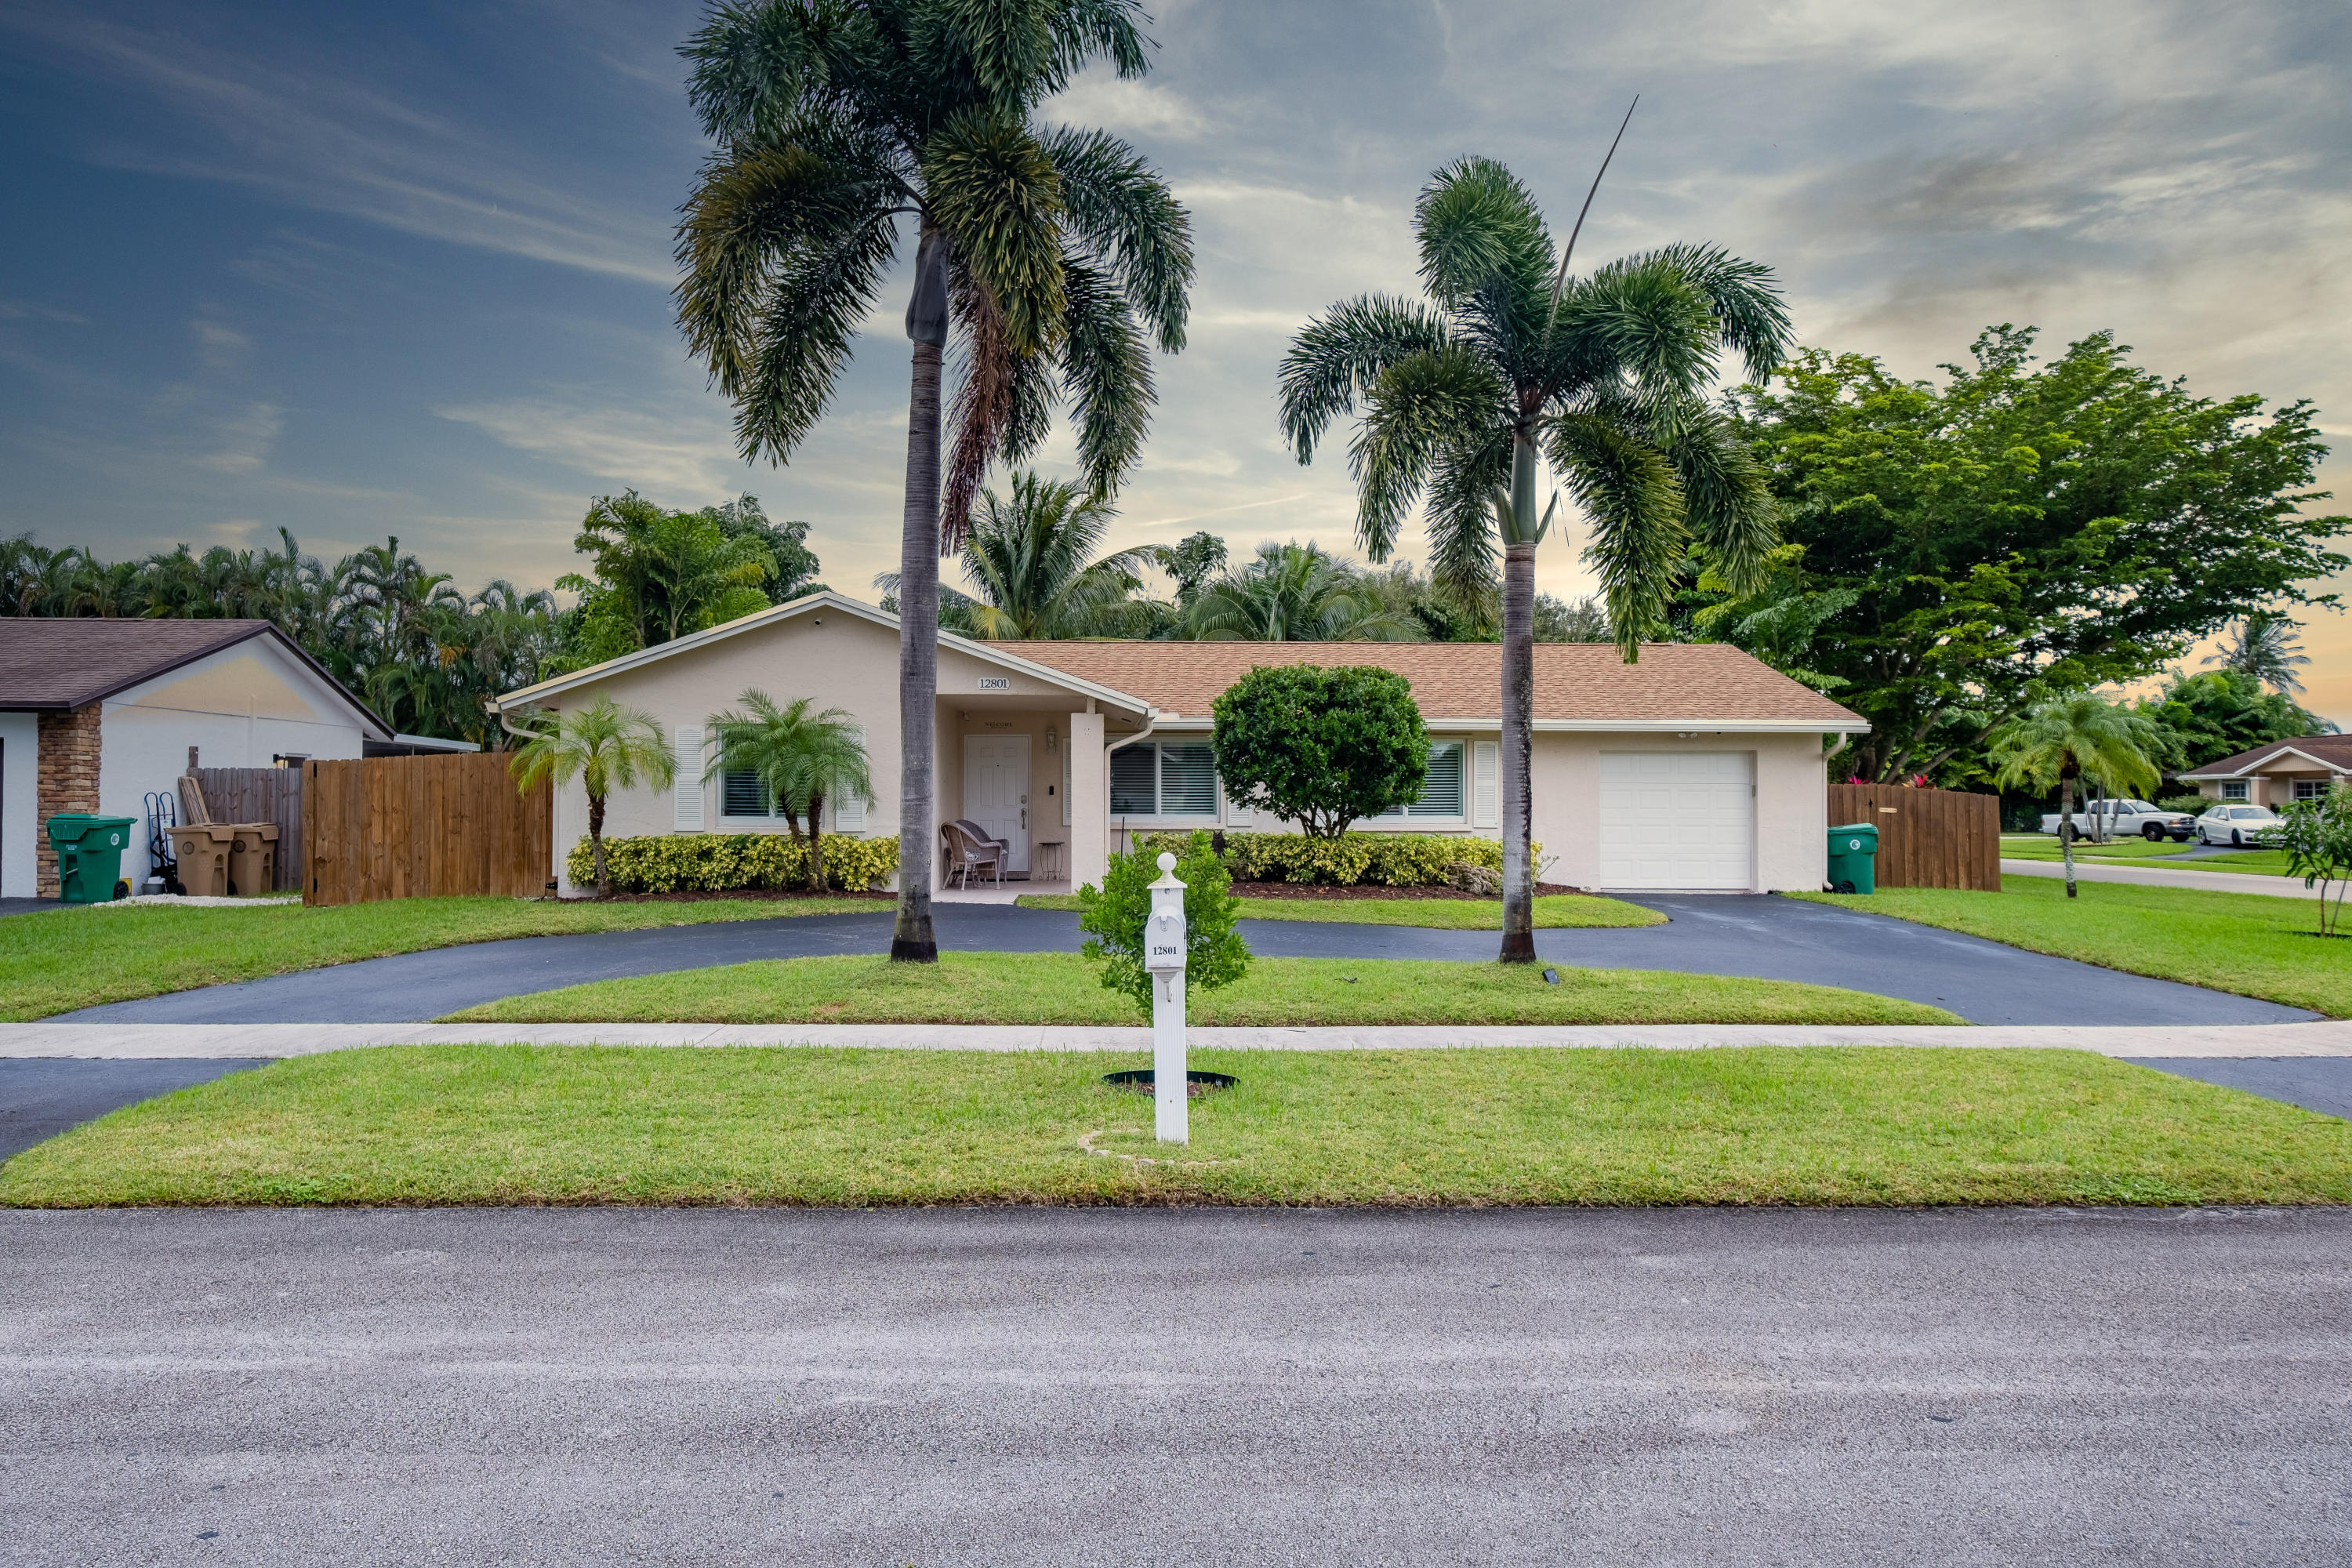 Home for sale in Orange Tree Davie Florida